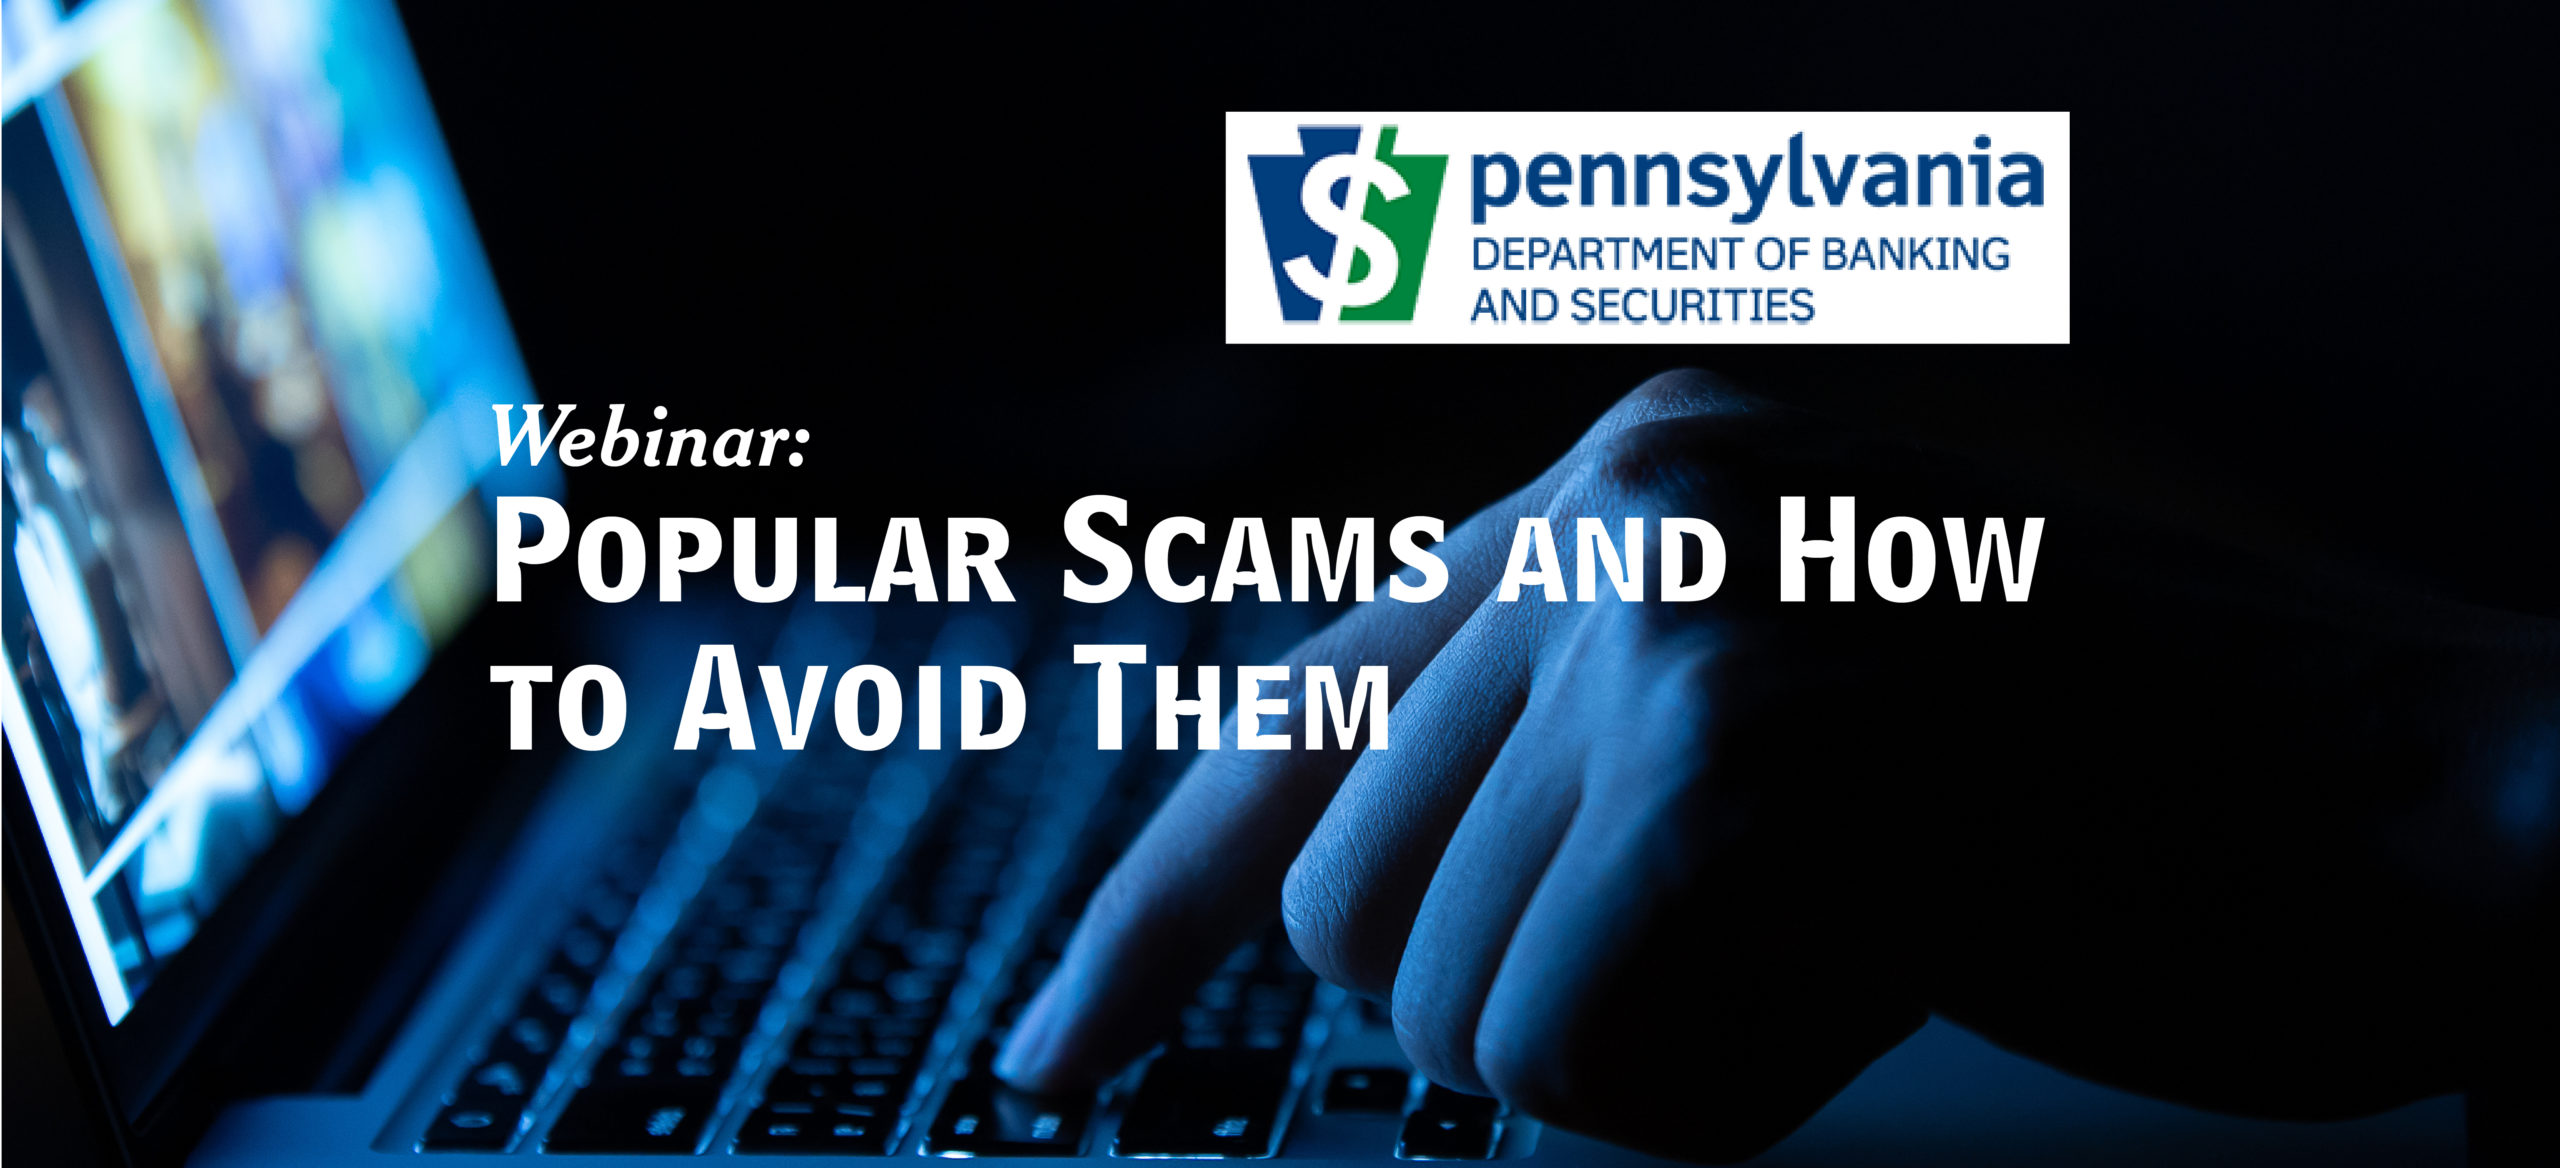 Popular Scams and How to Avoid Them